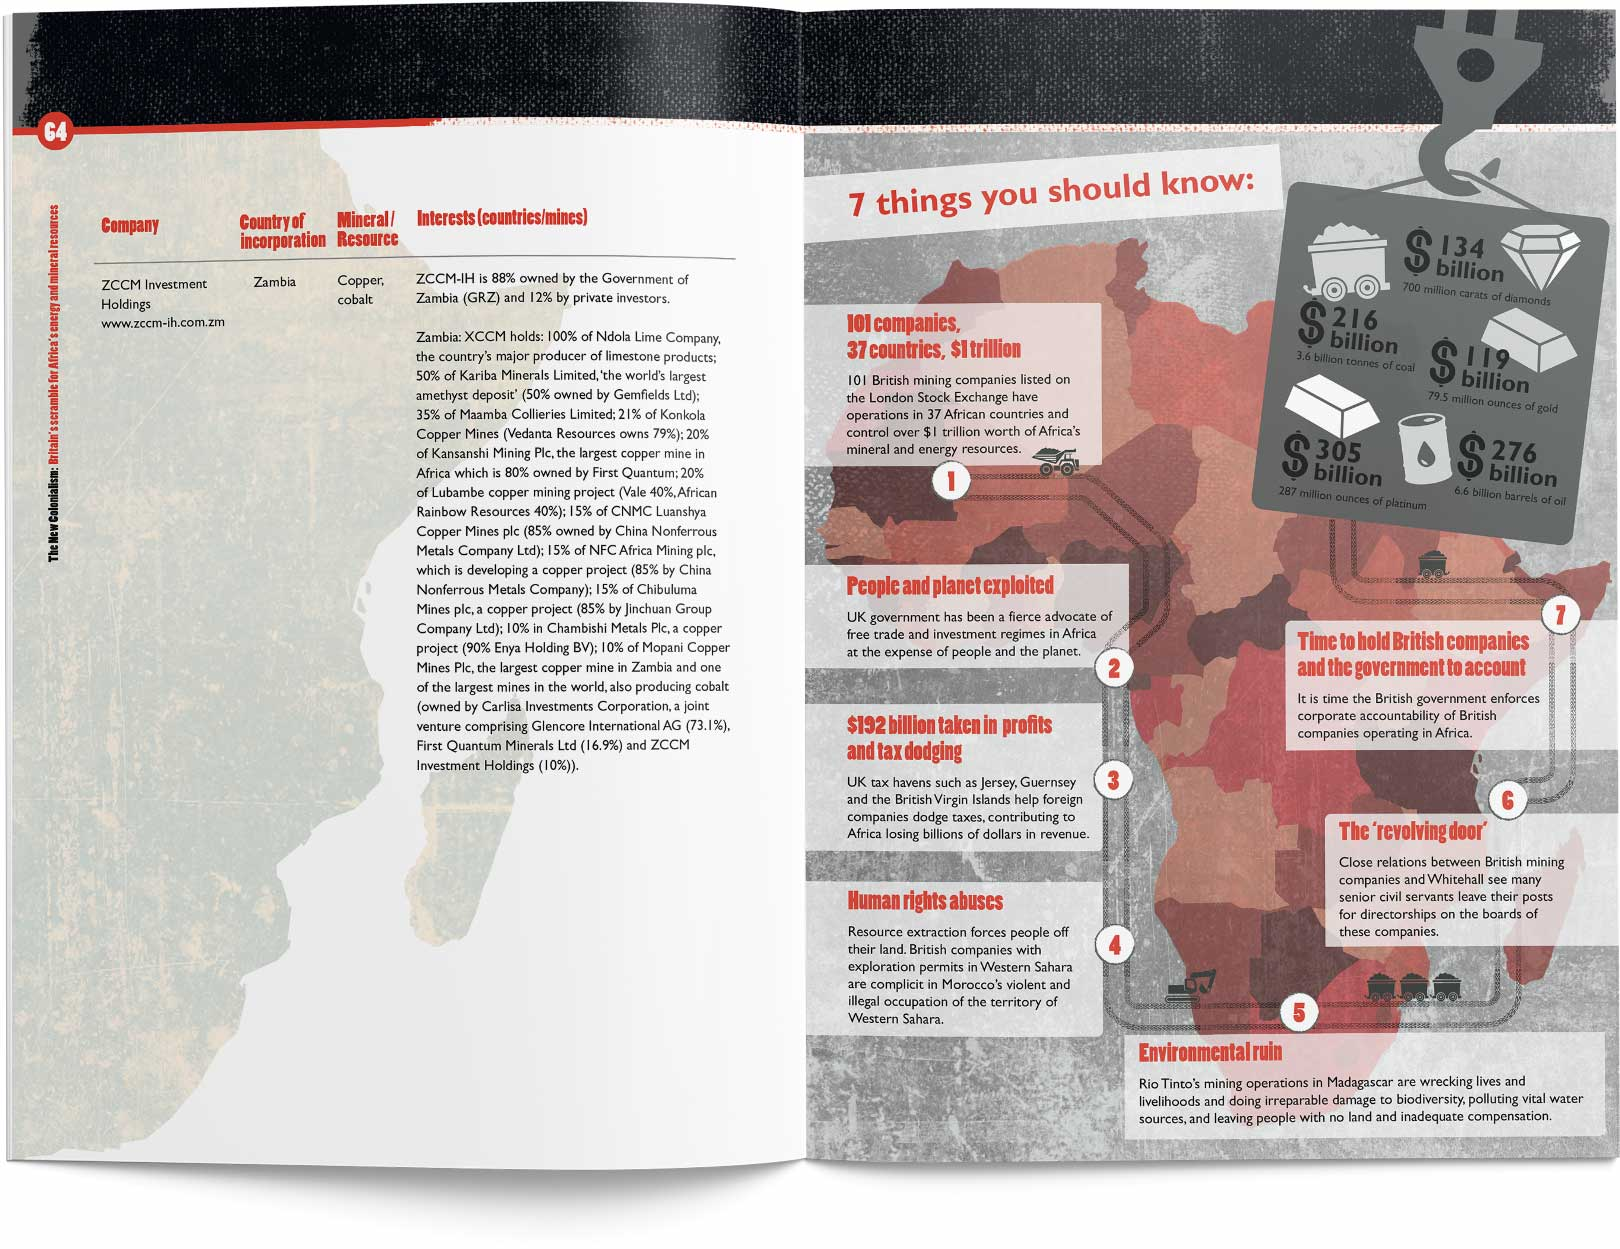 Inside spread of a report showing a map of Africa